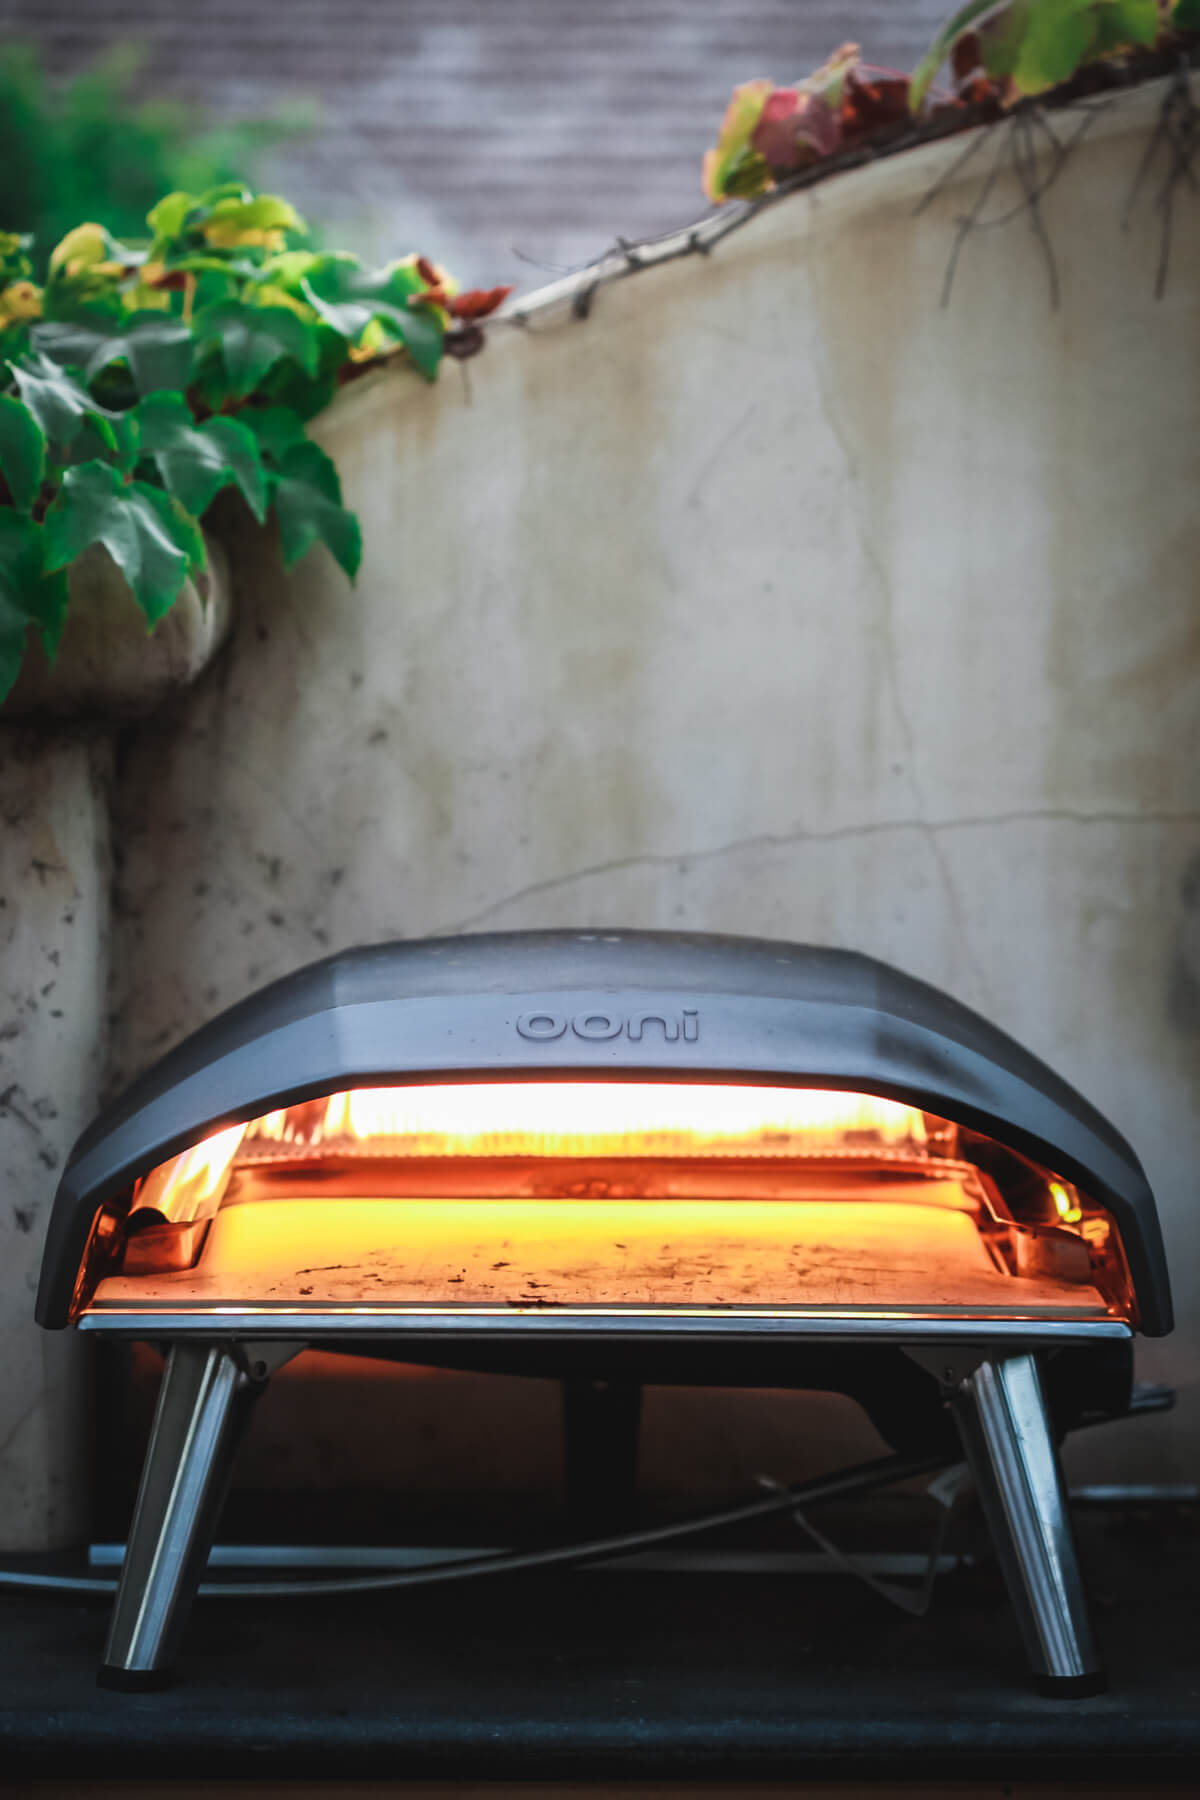 An Ooni Koda 16 pizza oven sits on an outdoor kitchen counter.